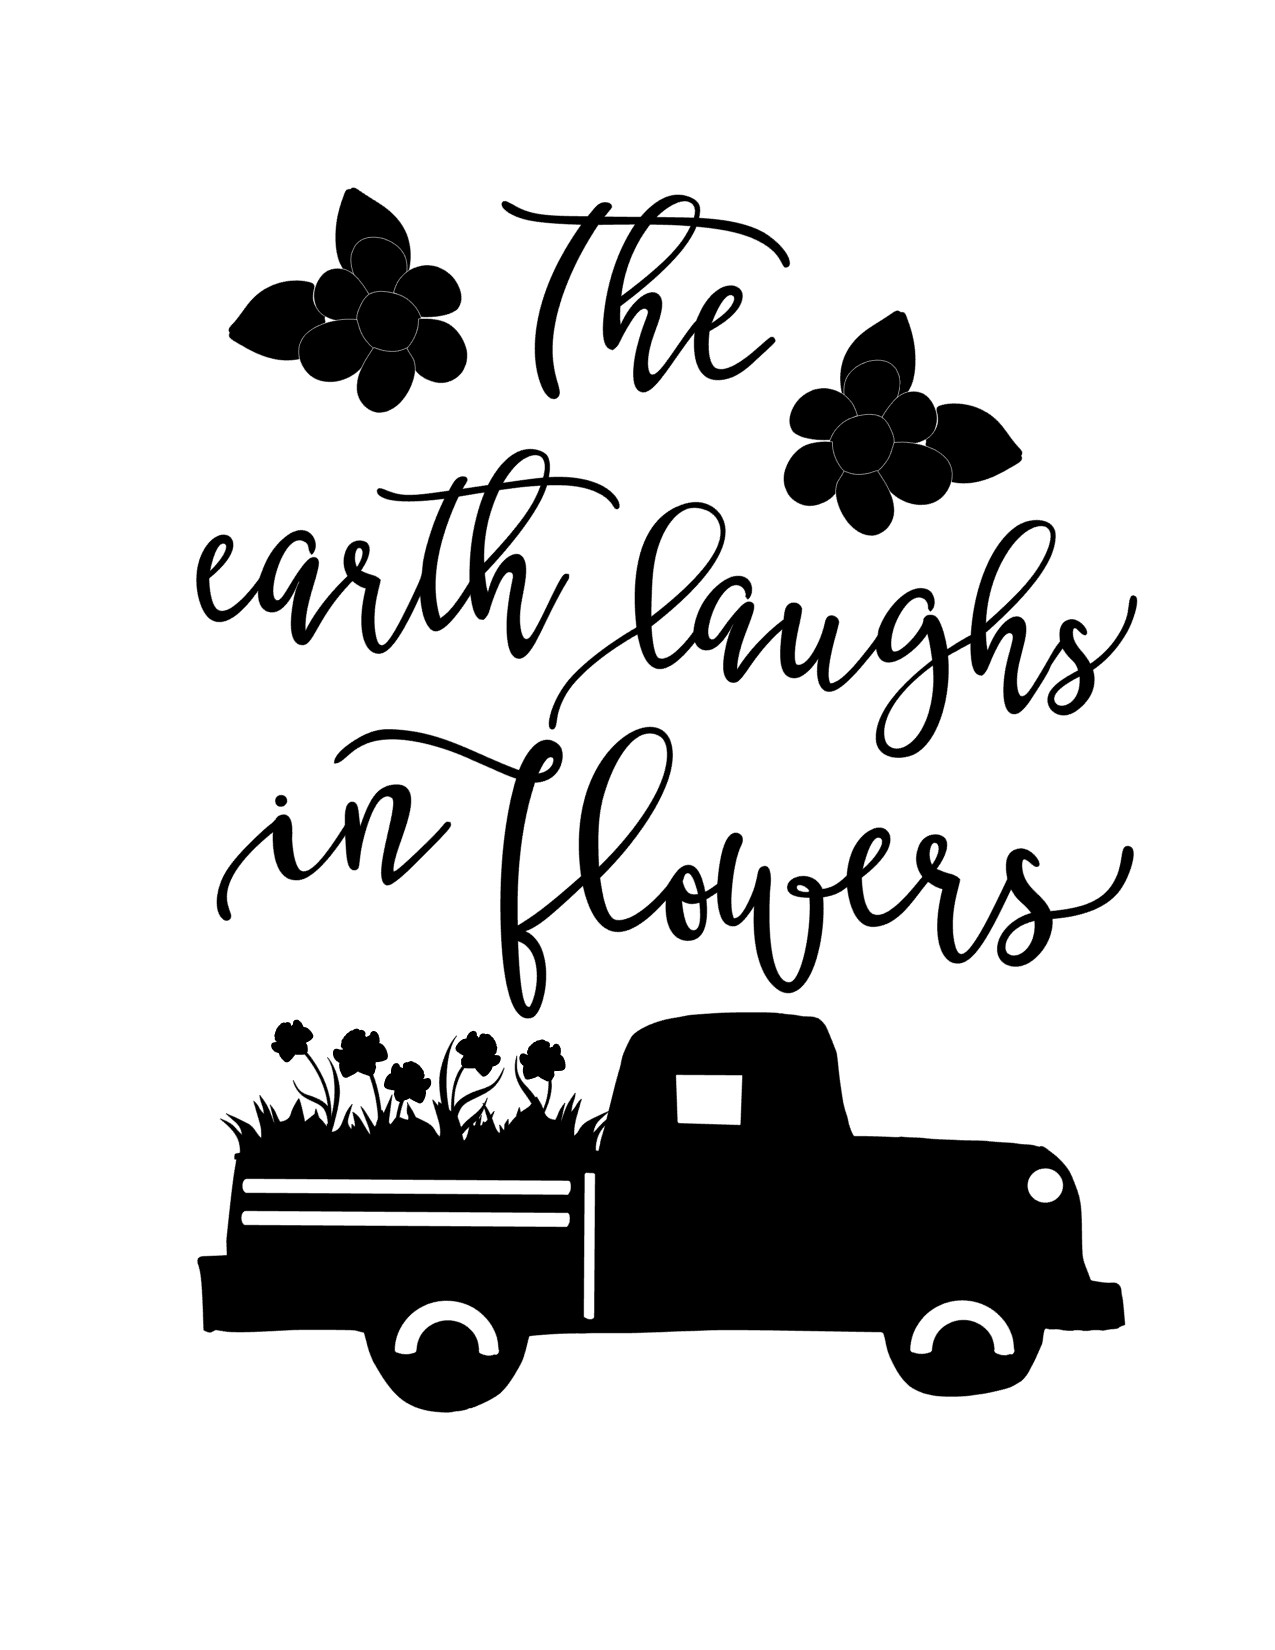 spring truck black earth laughs.jpg